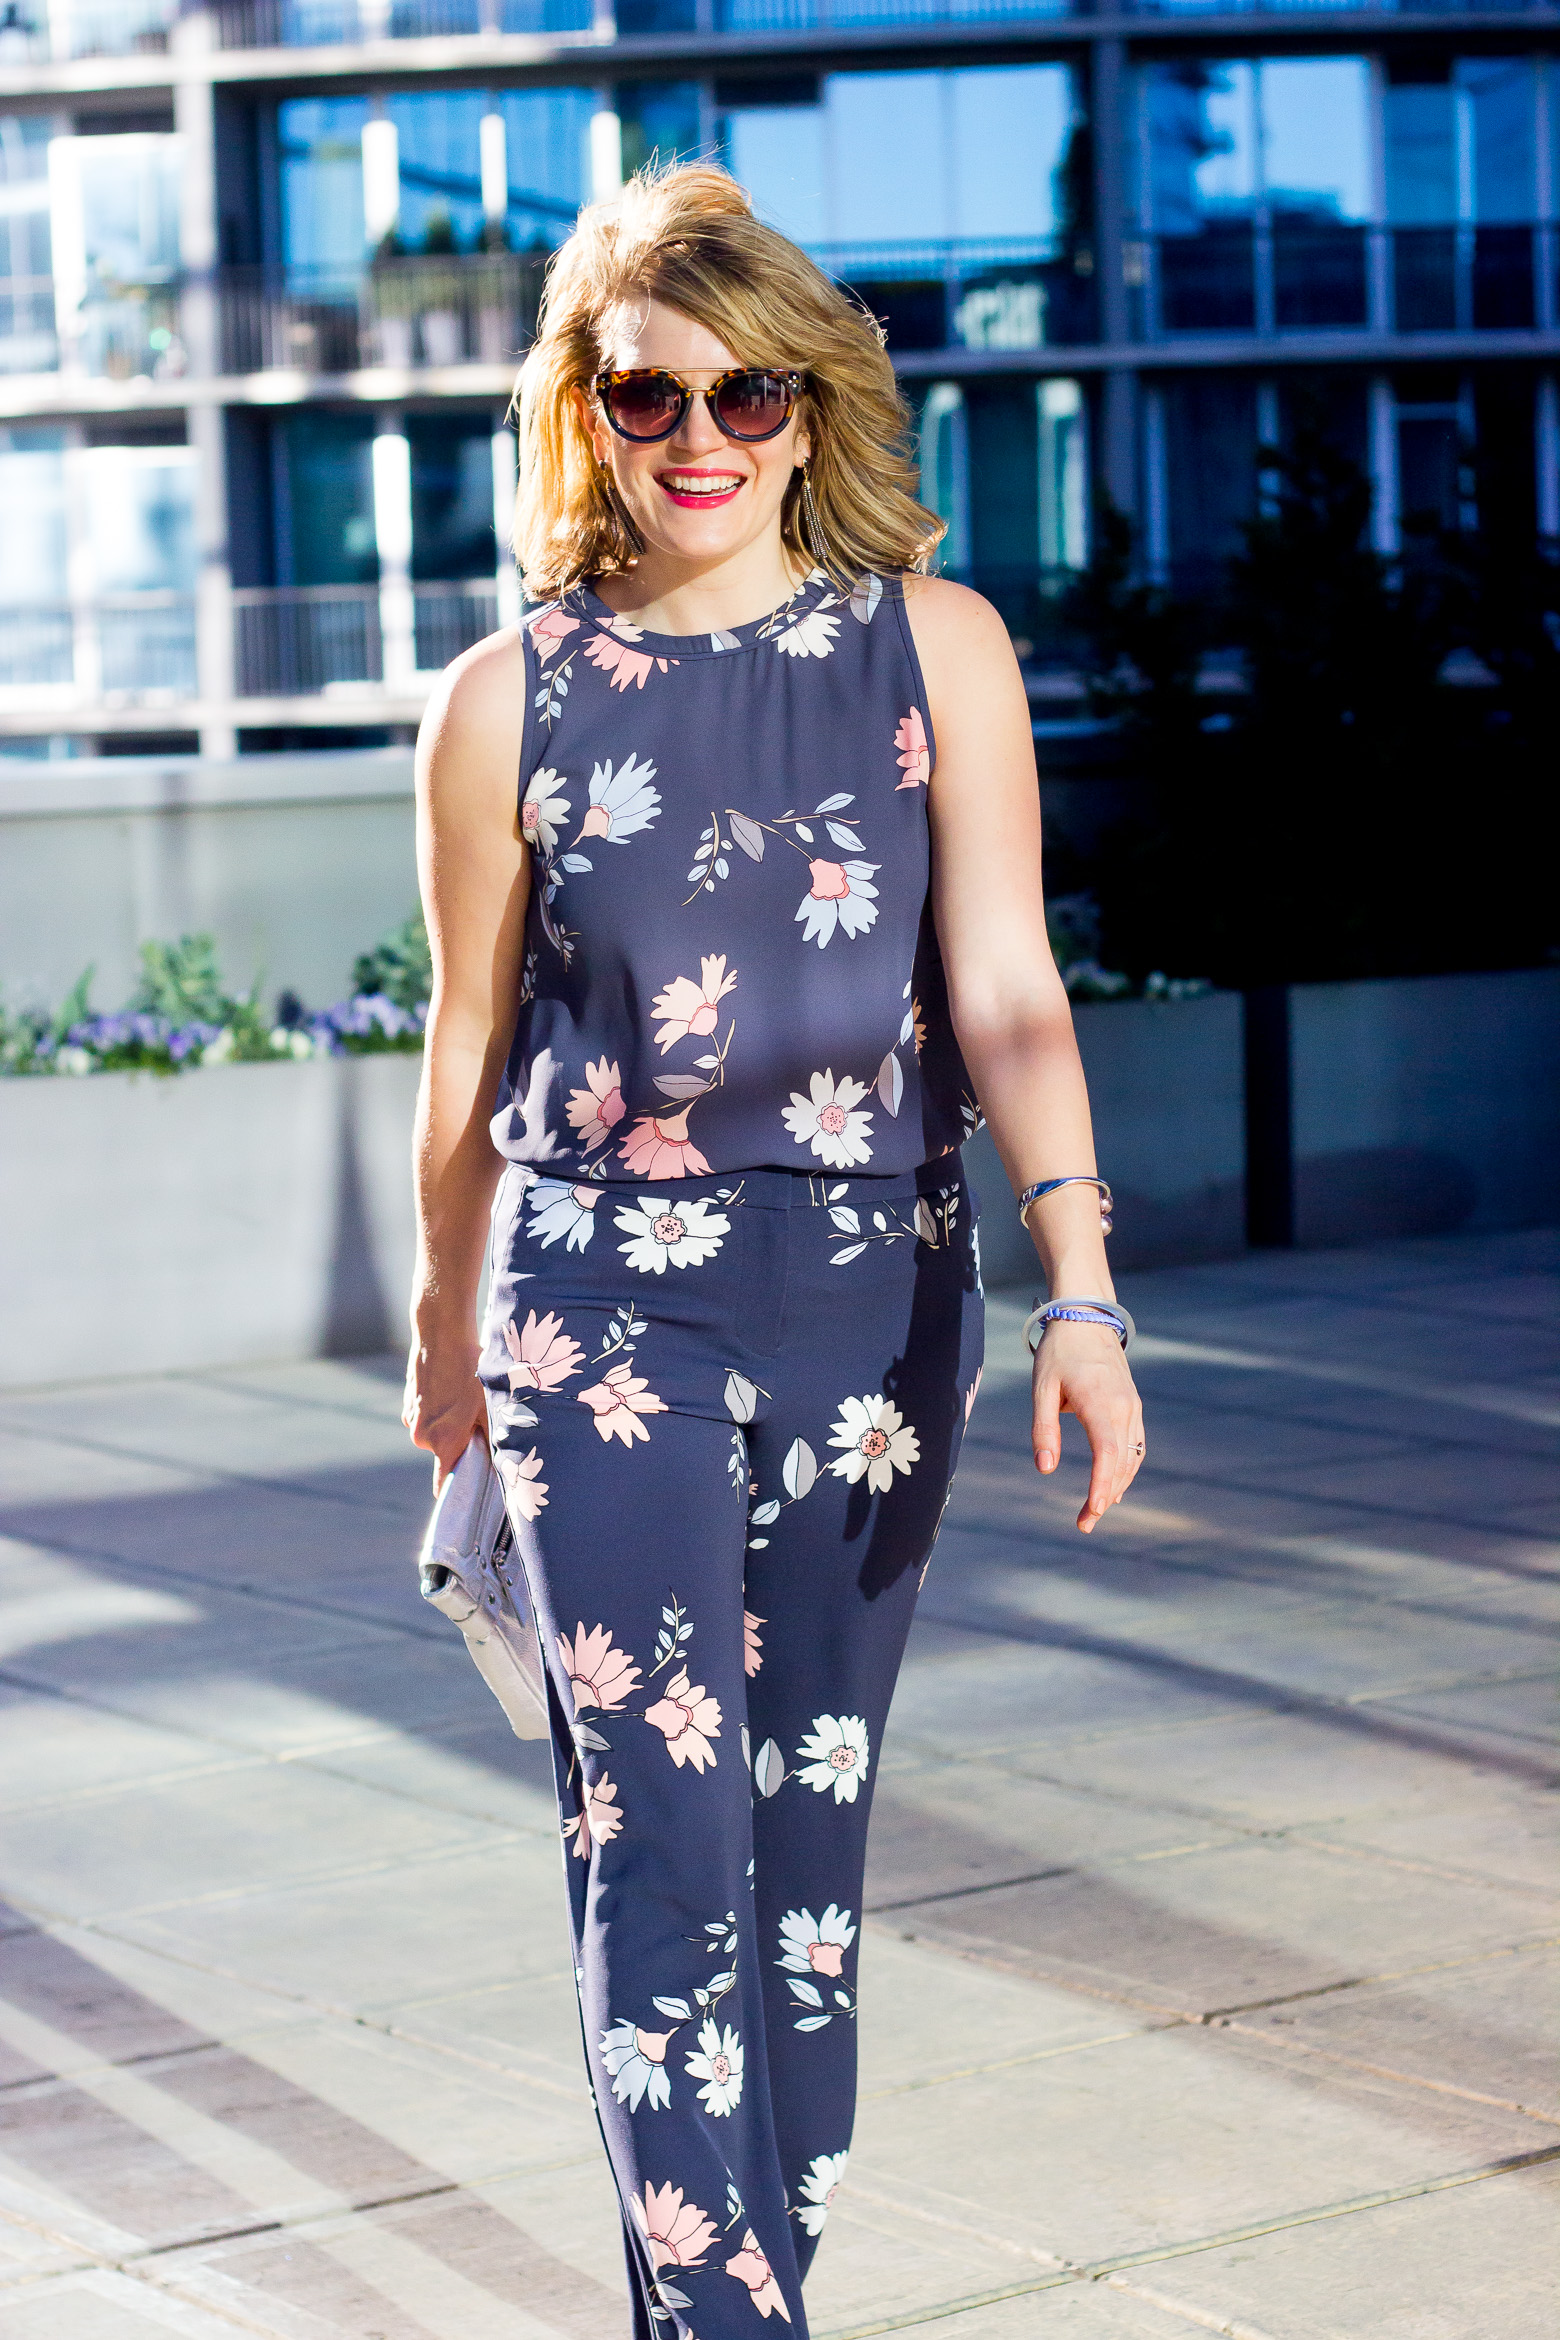 Floral pants and top by LOFT